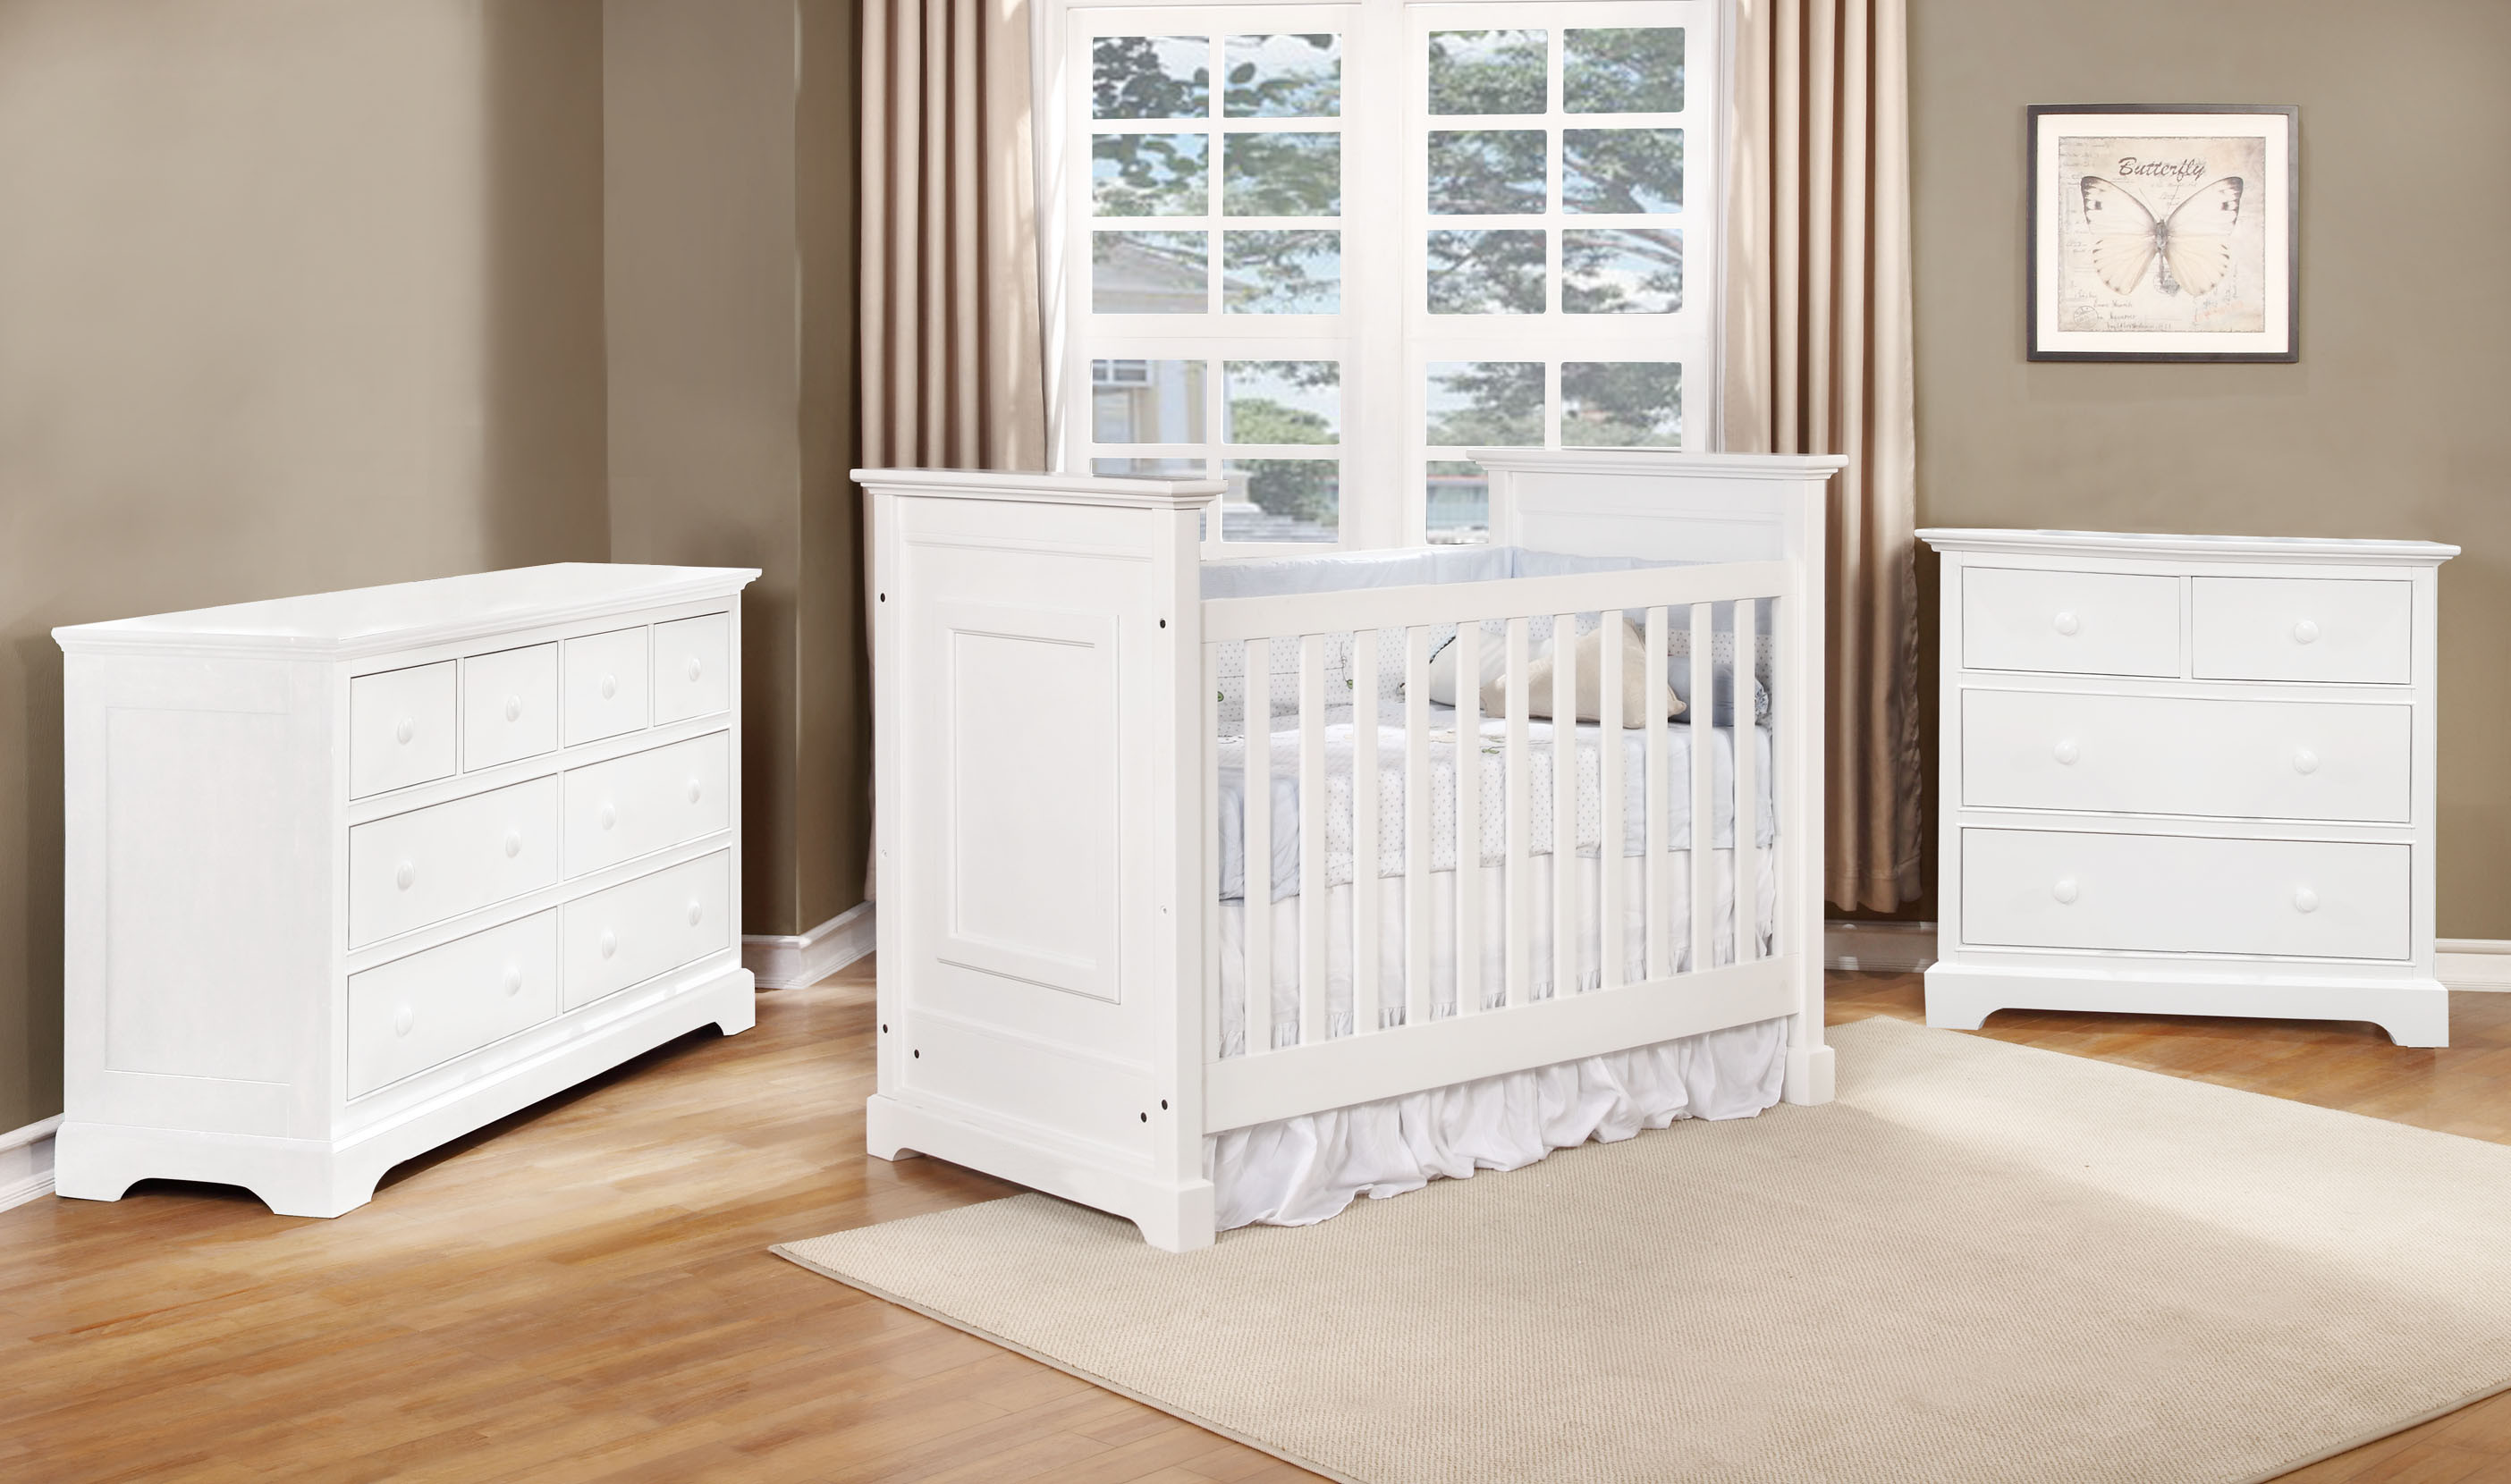 Waterford Classic Crib with Waterford Collection White